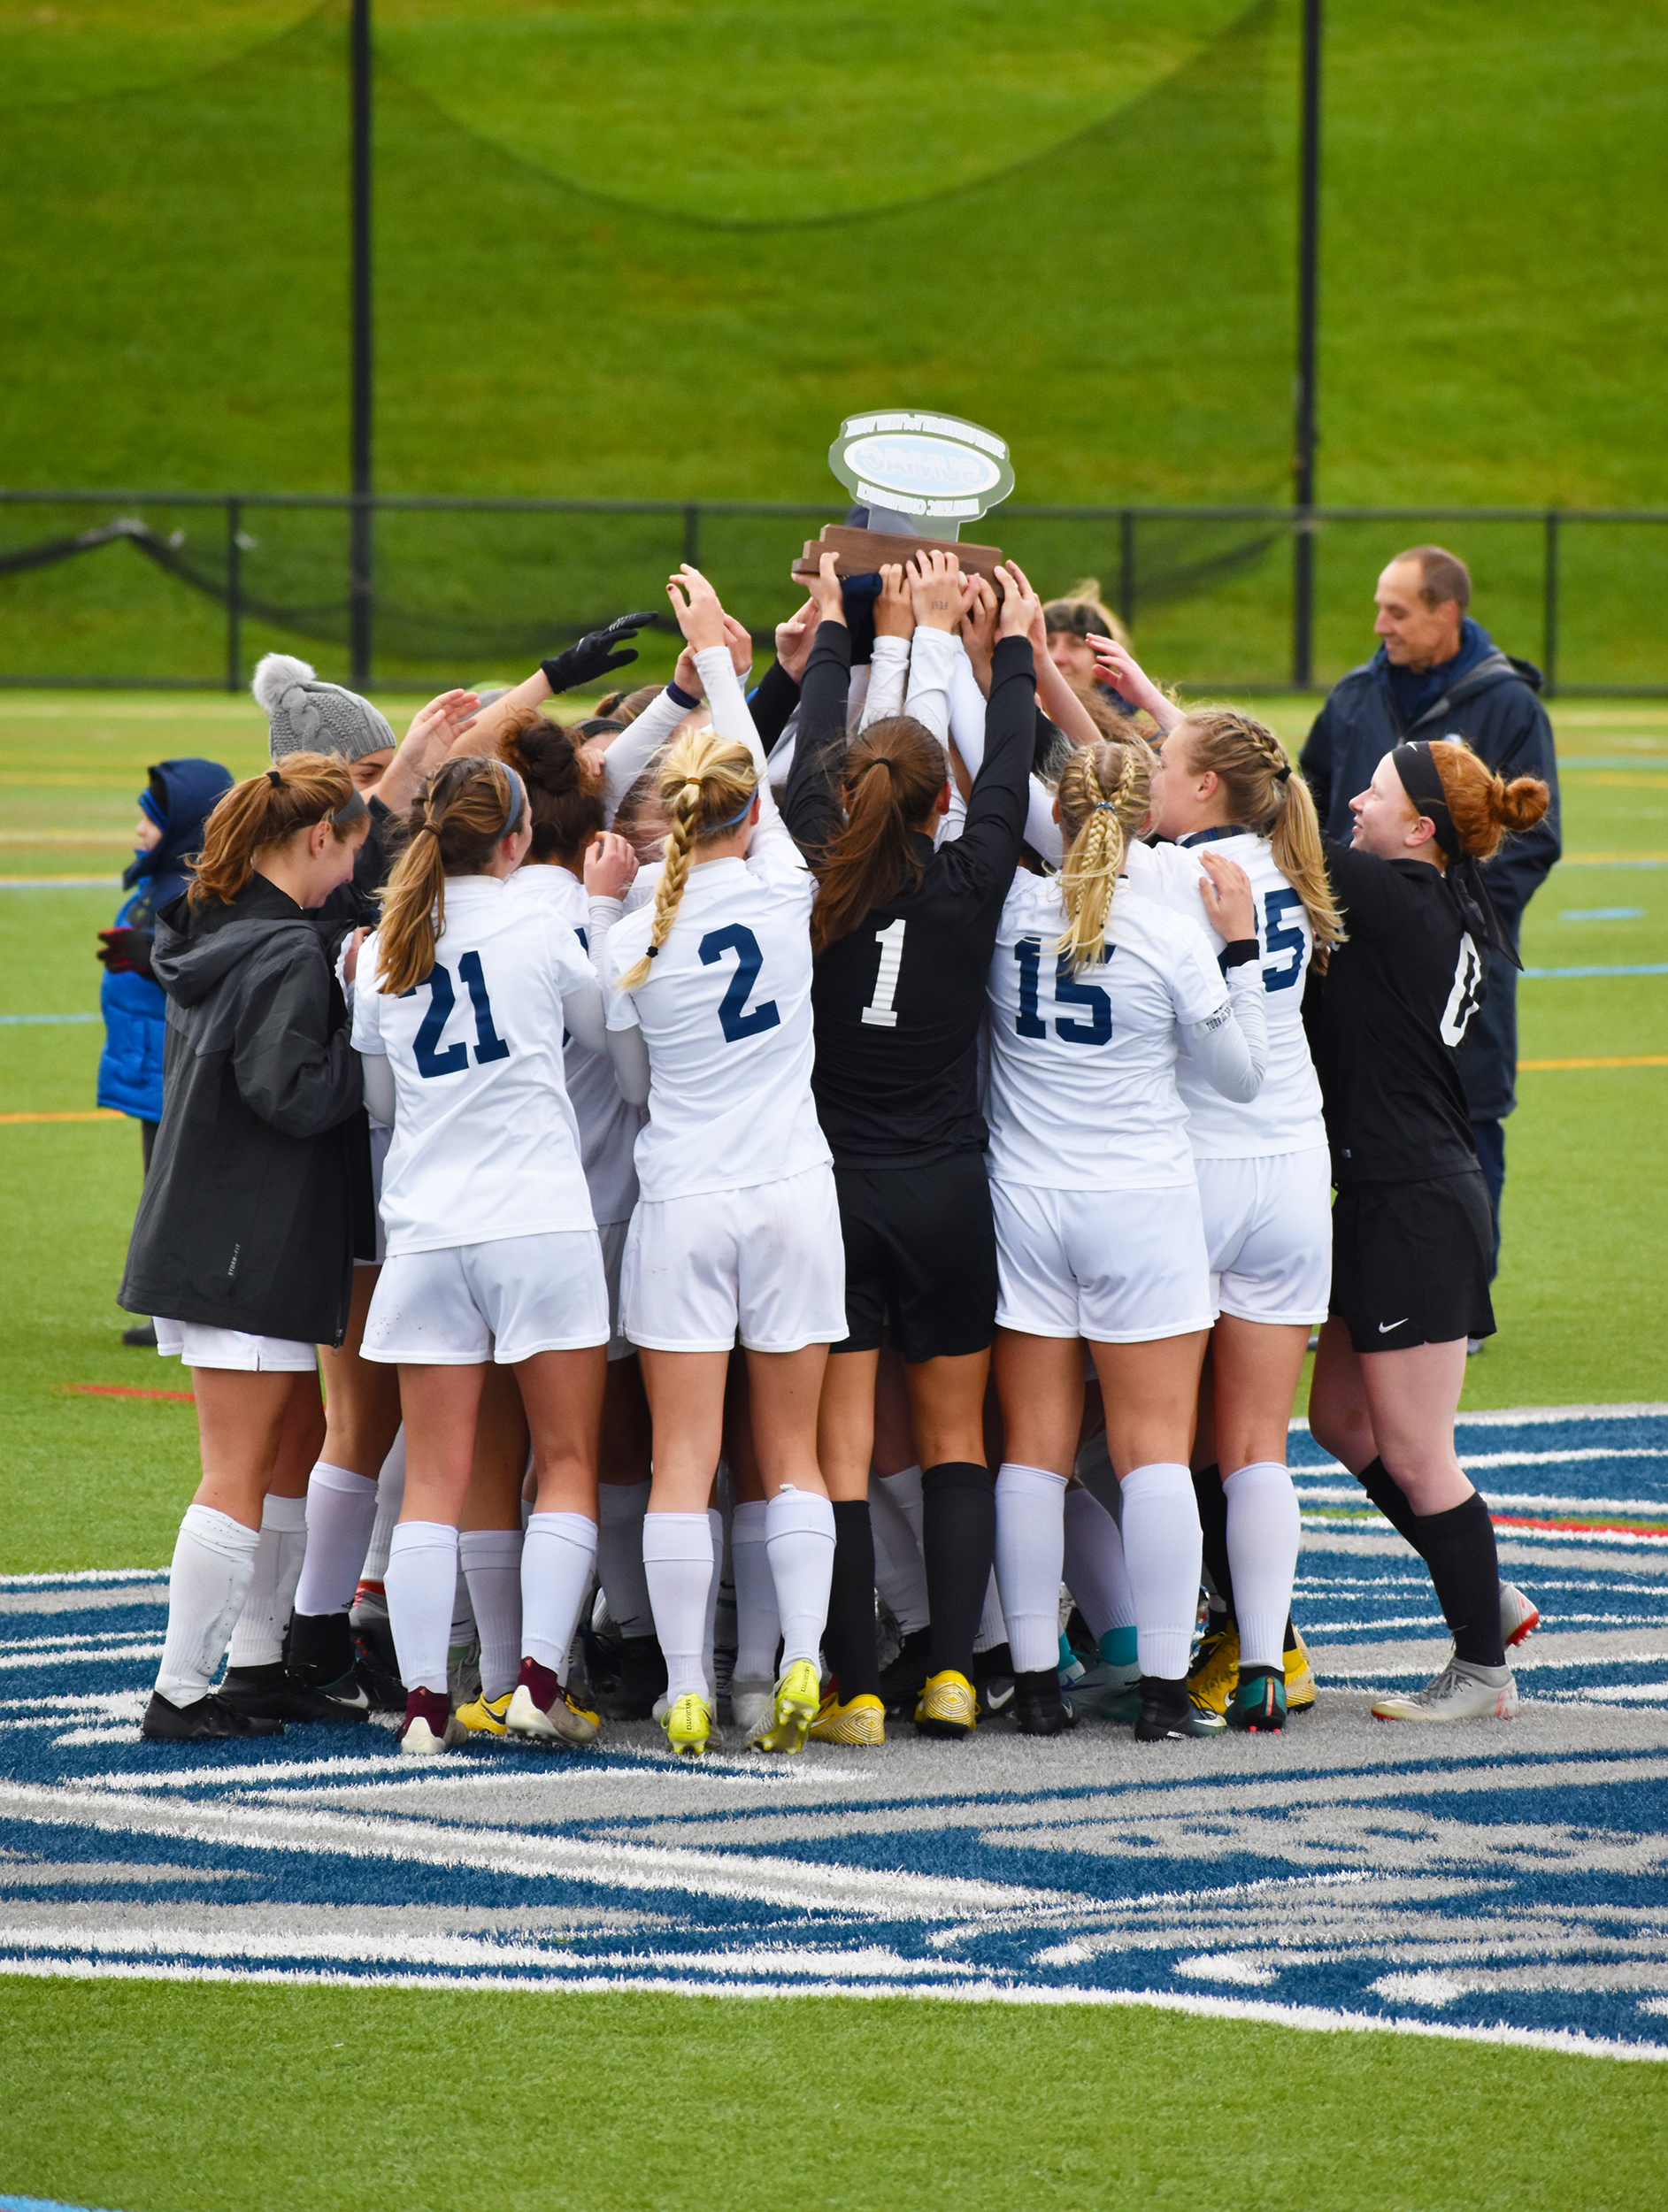 Geneseo women's soccer lifts up the trophy they received for winning their second straight SUNYAC championship (pictured above). The women defeated Cortland 1-0 in the championship game at home on Saturday Nov. 3. The victory ensured the team a spot in the NCAA tournament (Josie Kwan/assoc. photo editor).